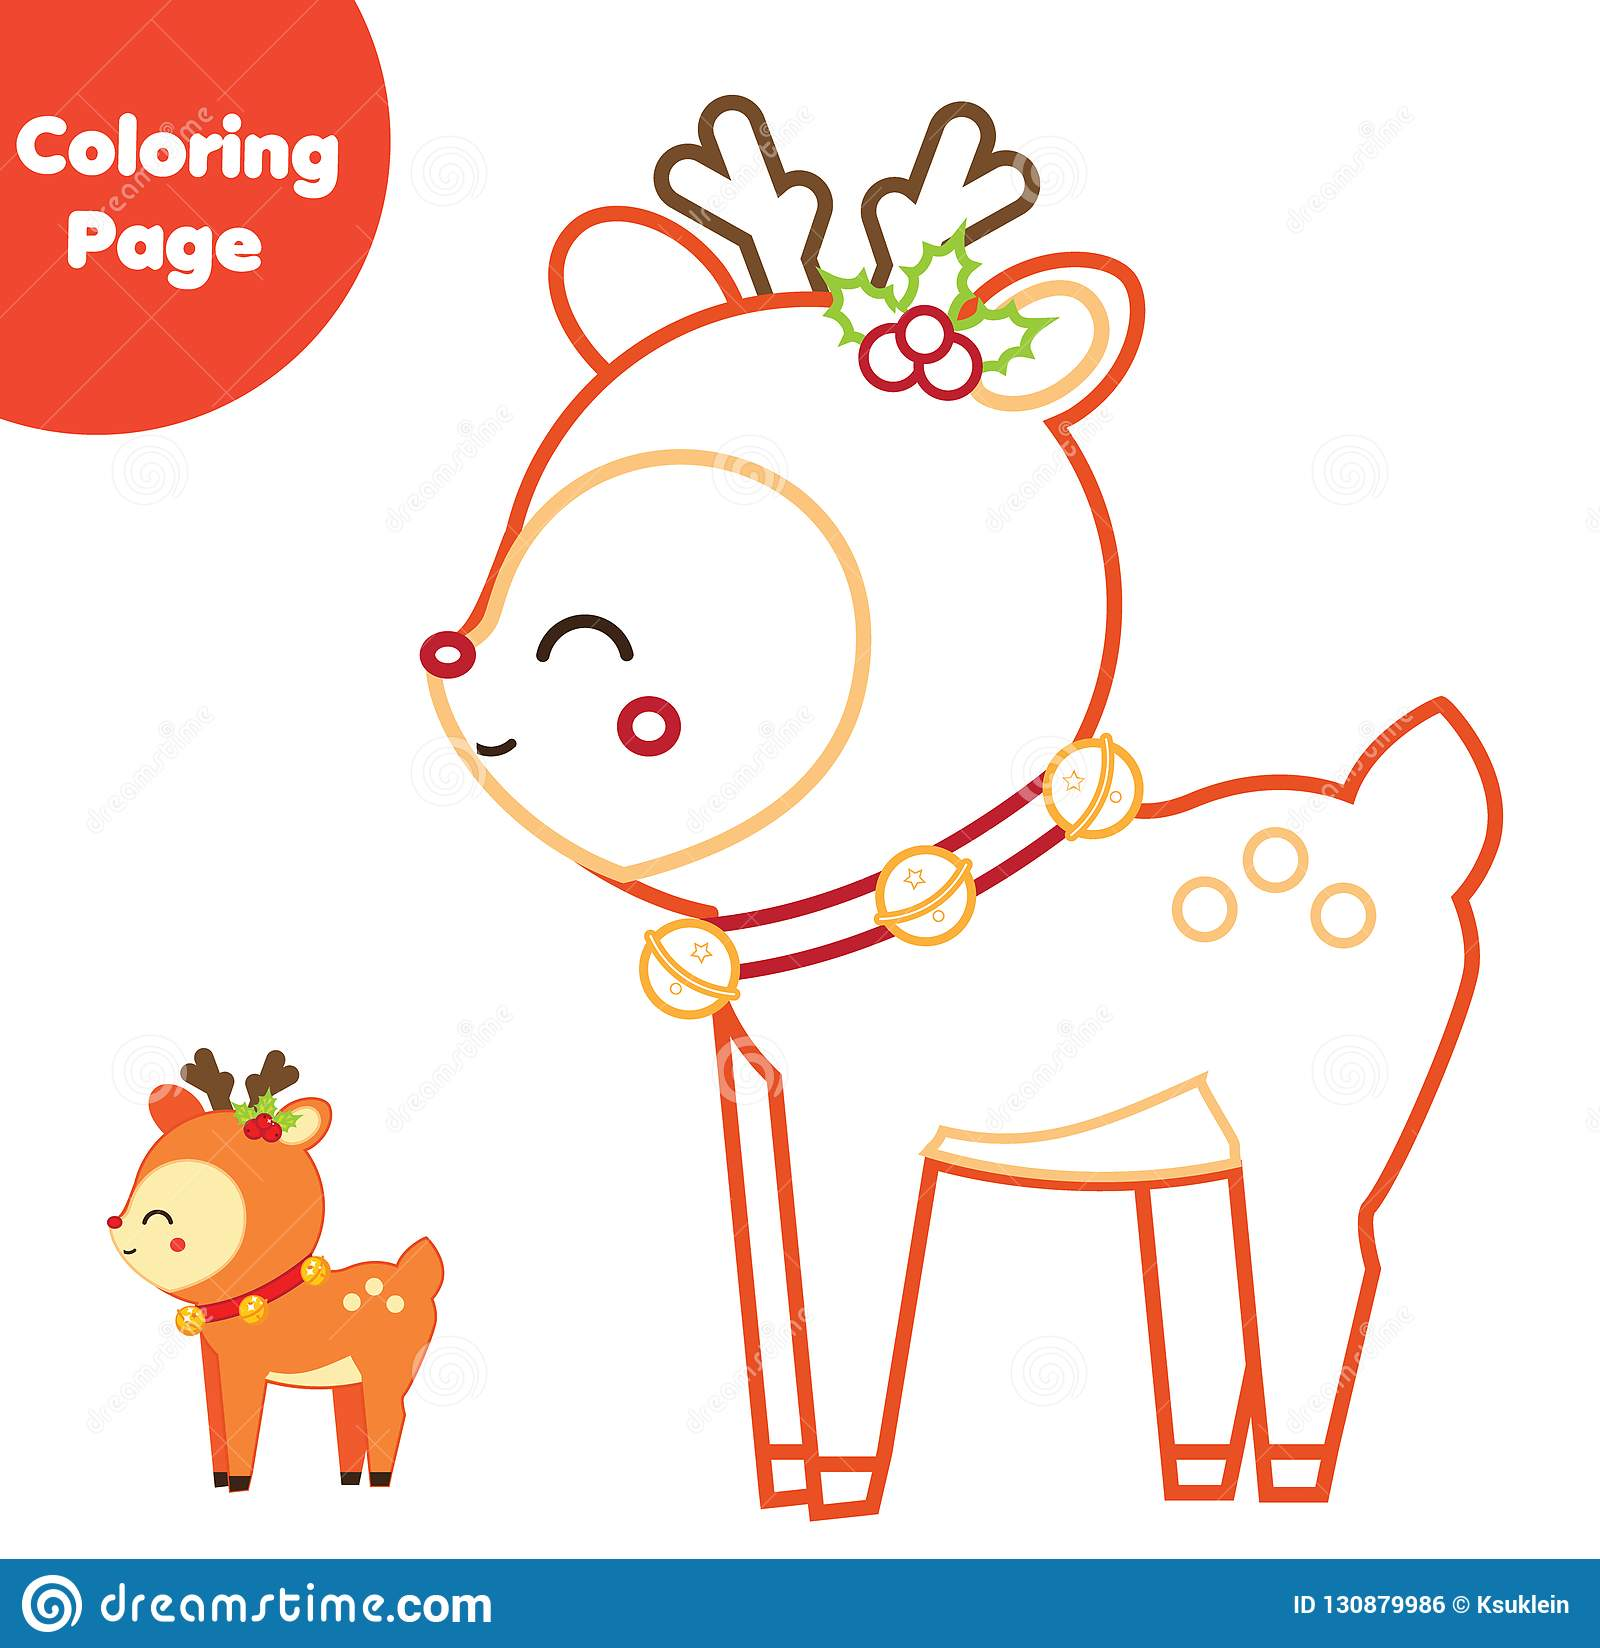 Coloring Page Educational Children Game Color Christmas